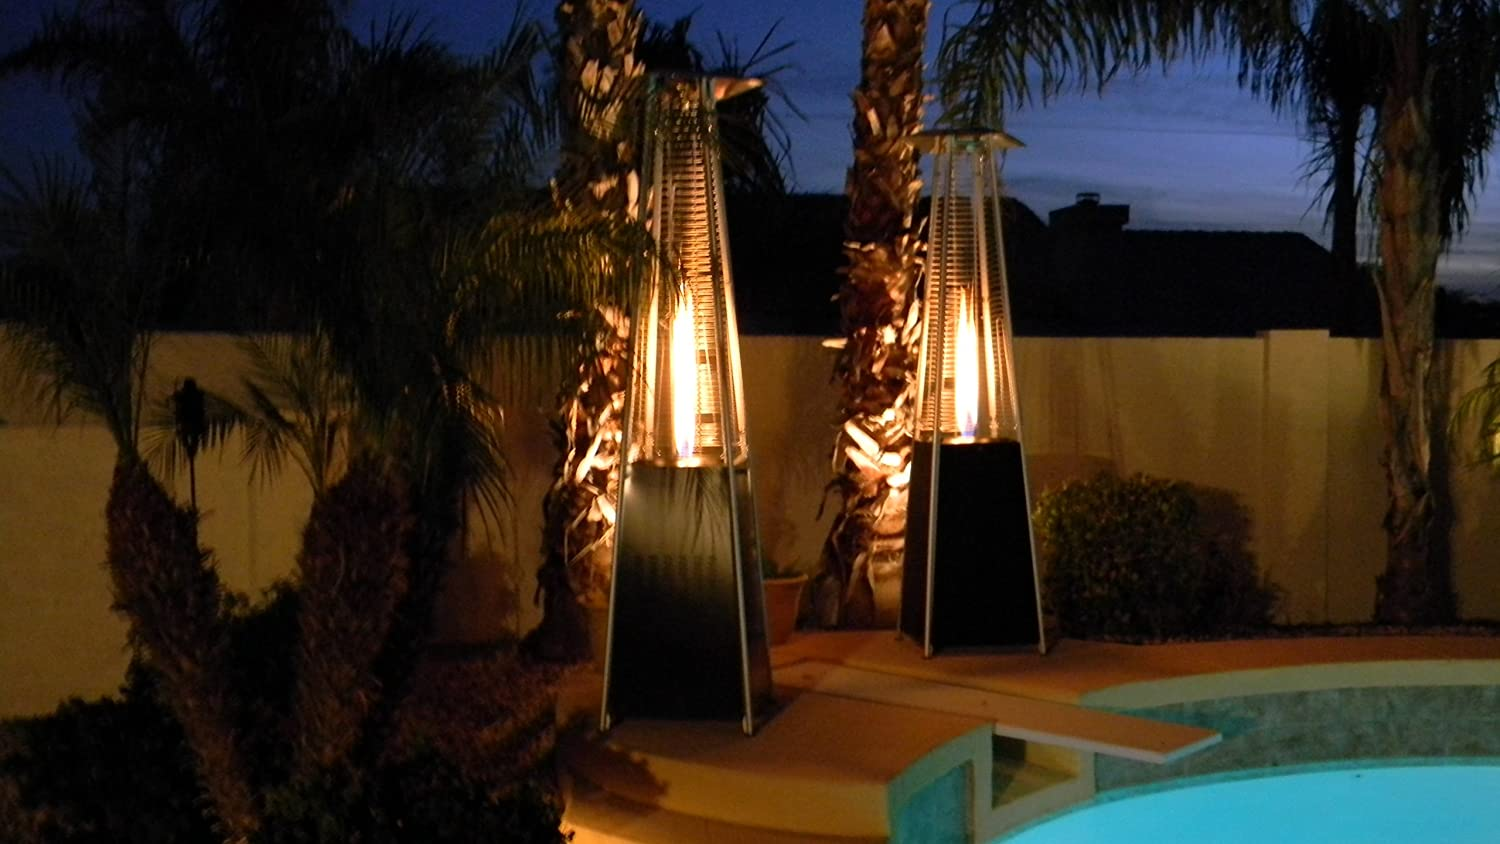 AZ Patio Heaters Glass Tube Patio Heater, Bronze, 19x19x89 Cm:  Amazon.co.uk: Garden U0026 Outdoors